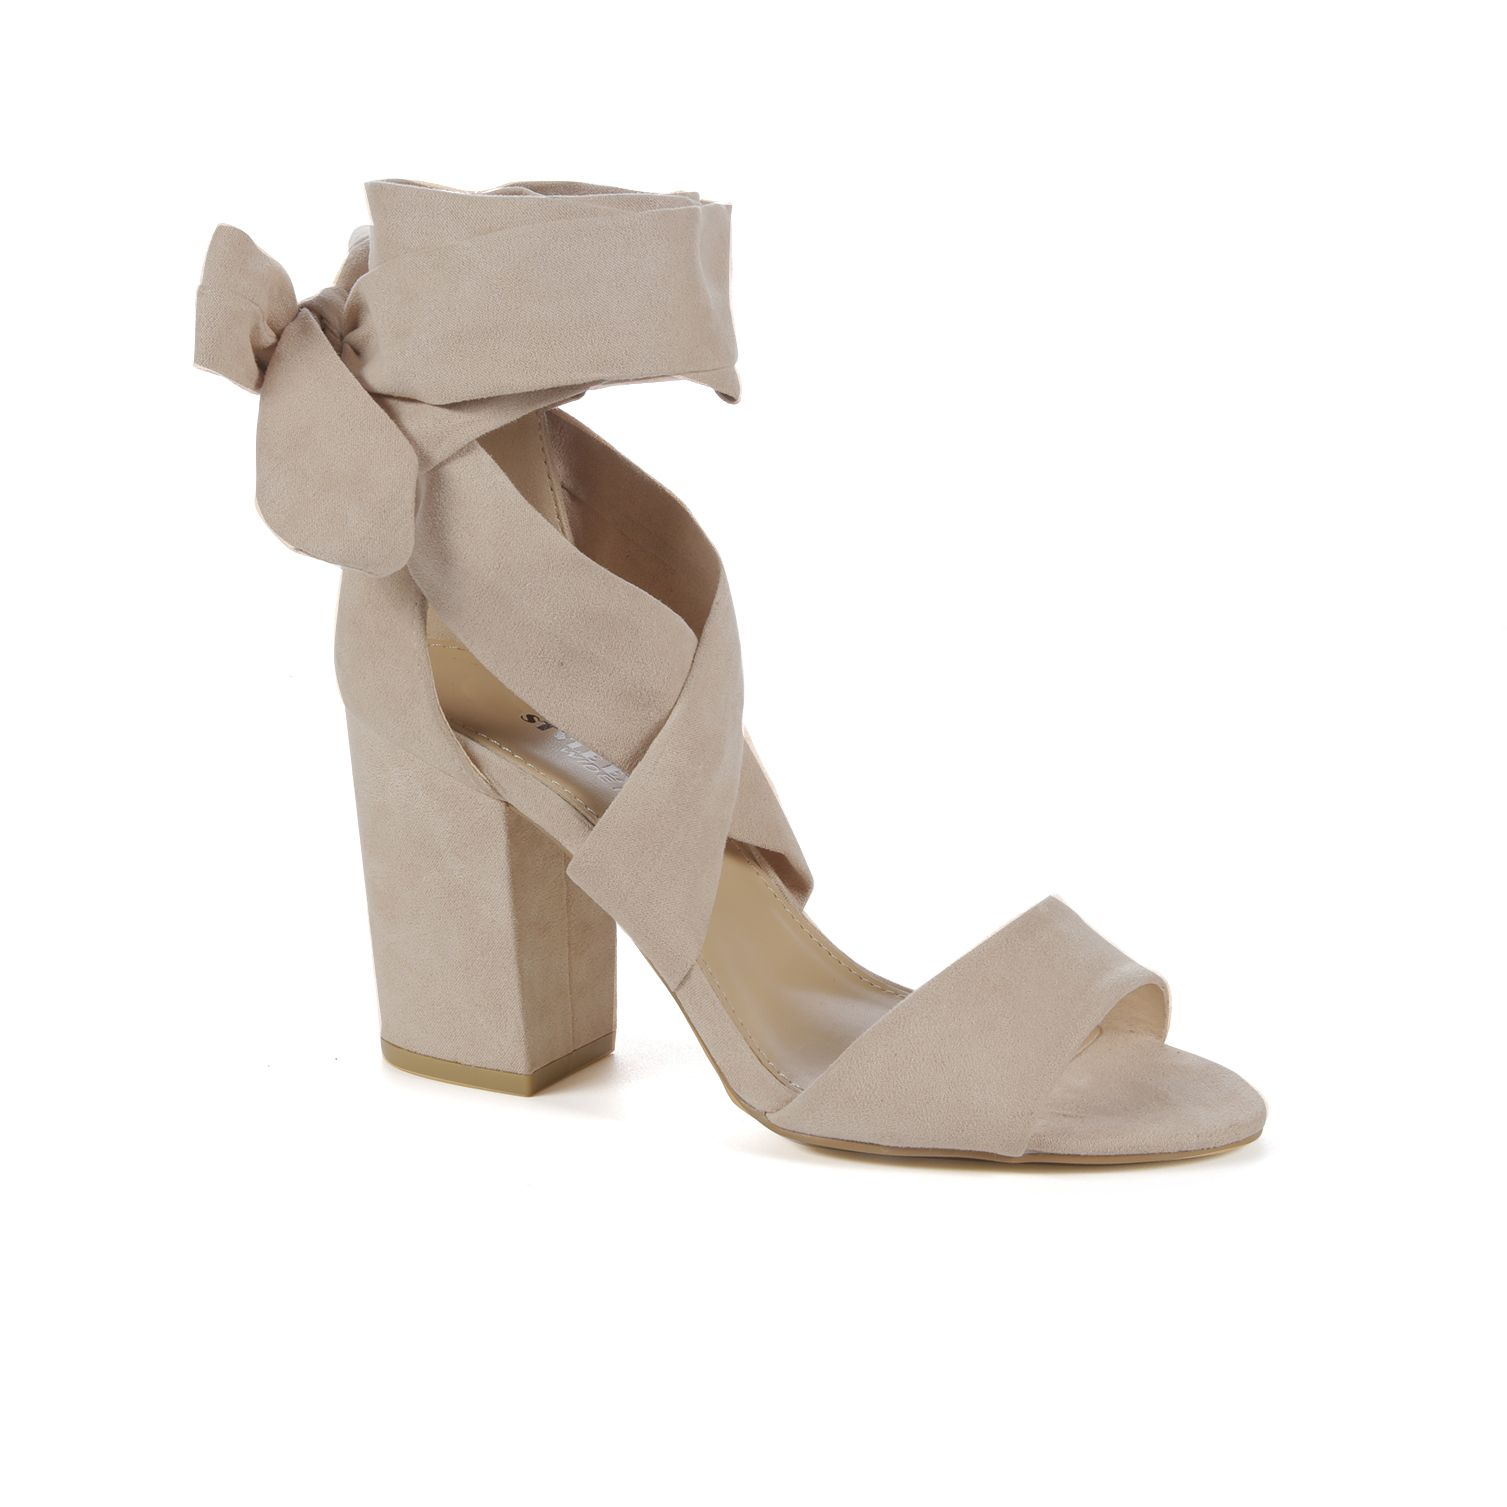 Sadie Block Heels Wide Fit Canvas Shoes Women Lace Dress With Sleeves Number One Shoes